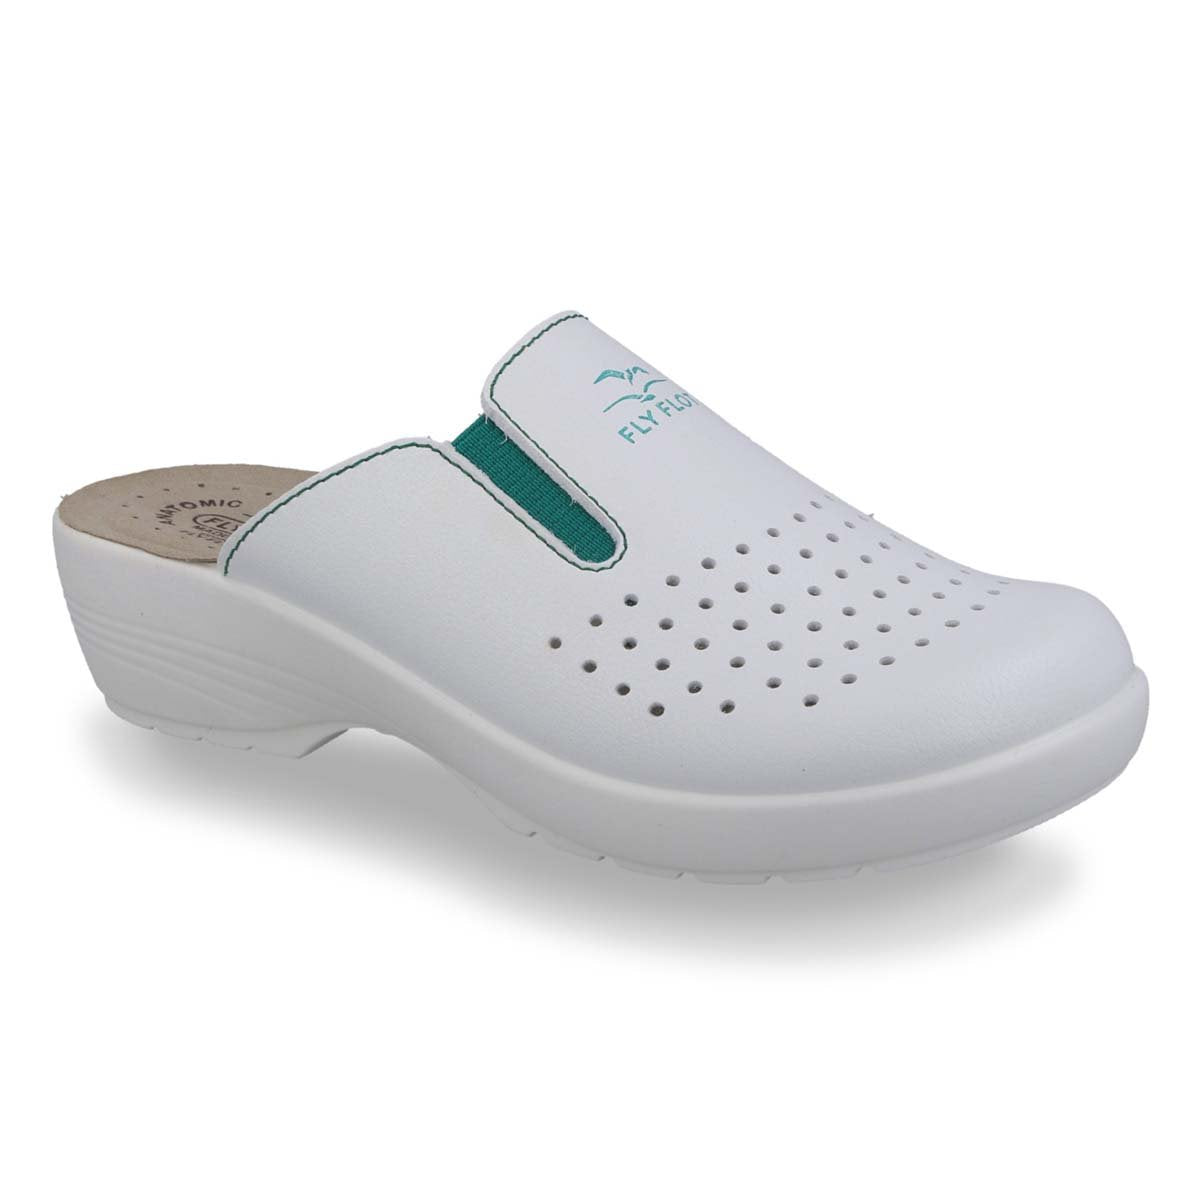 Photo of the Synthetic Woman Slipper White (Z1003ea)